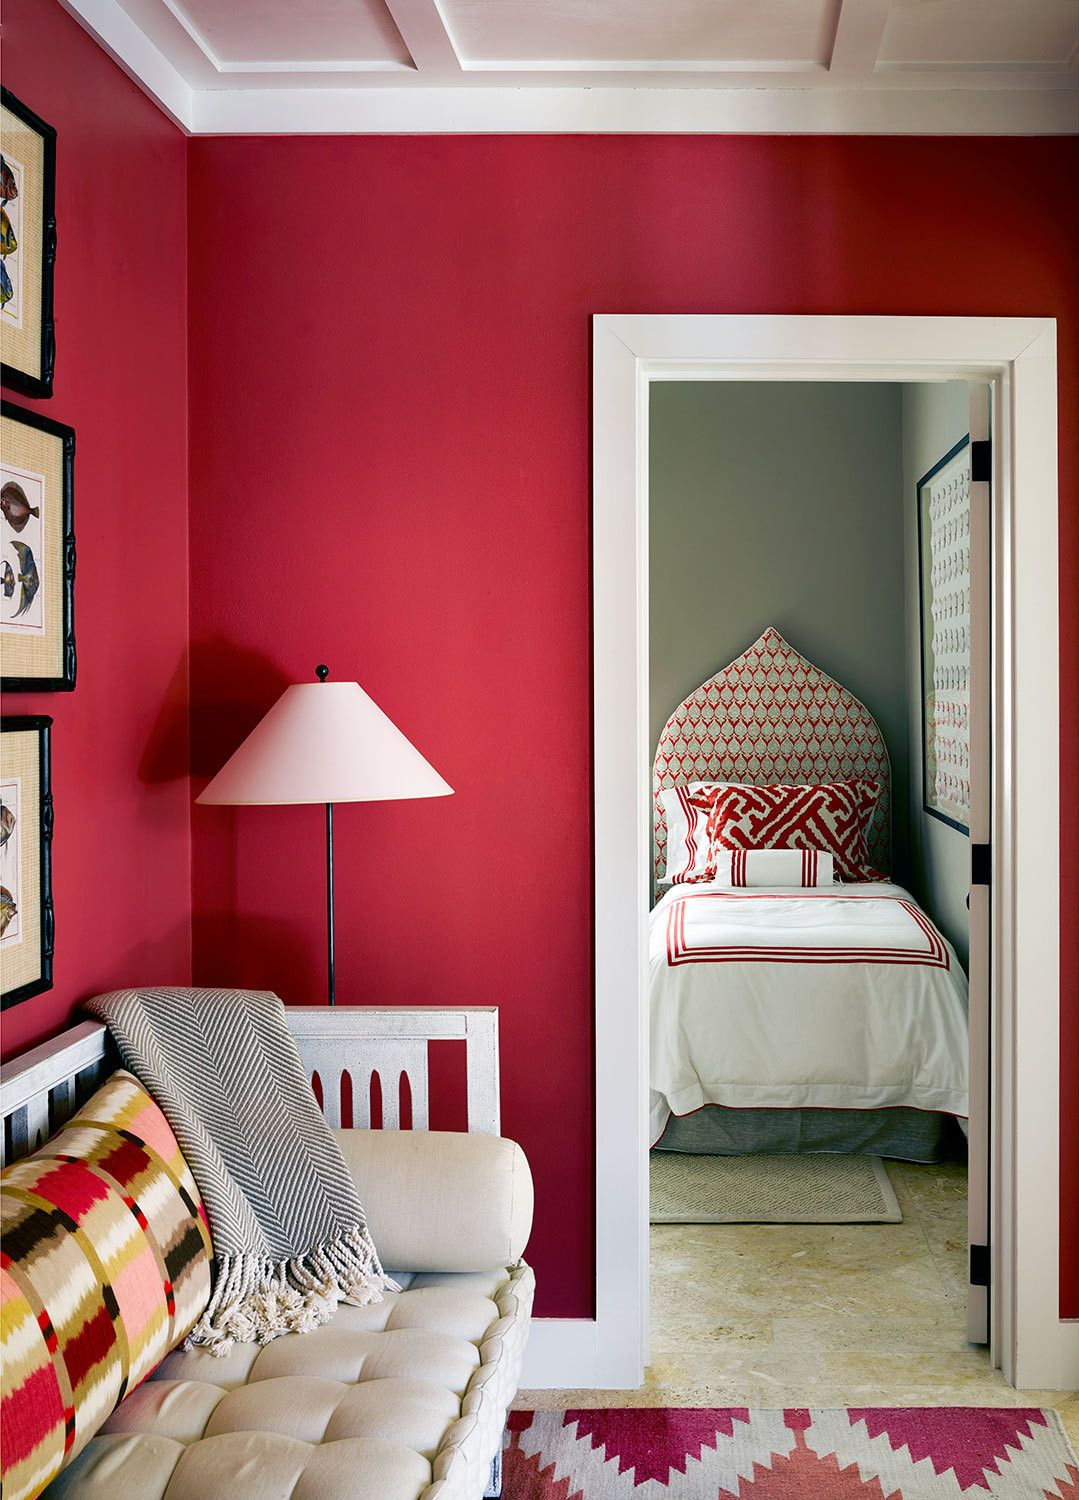 Castaway Chic July August 2014 Lonny Red Rooms Home Decor Eclectic Bedroom